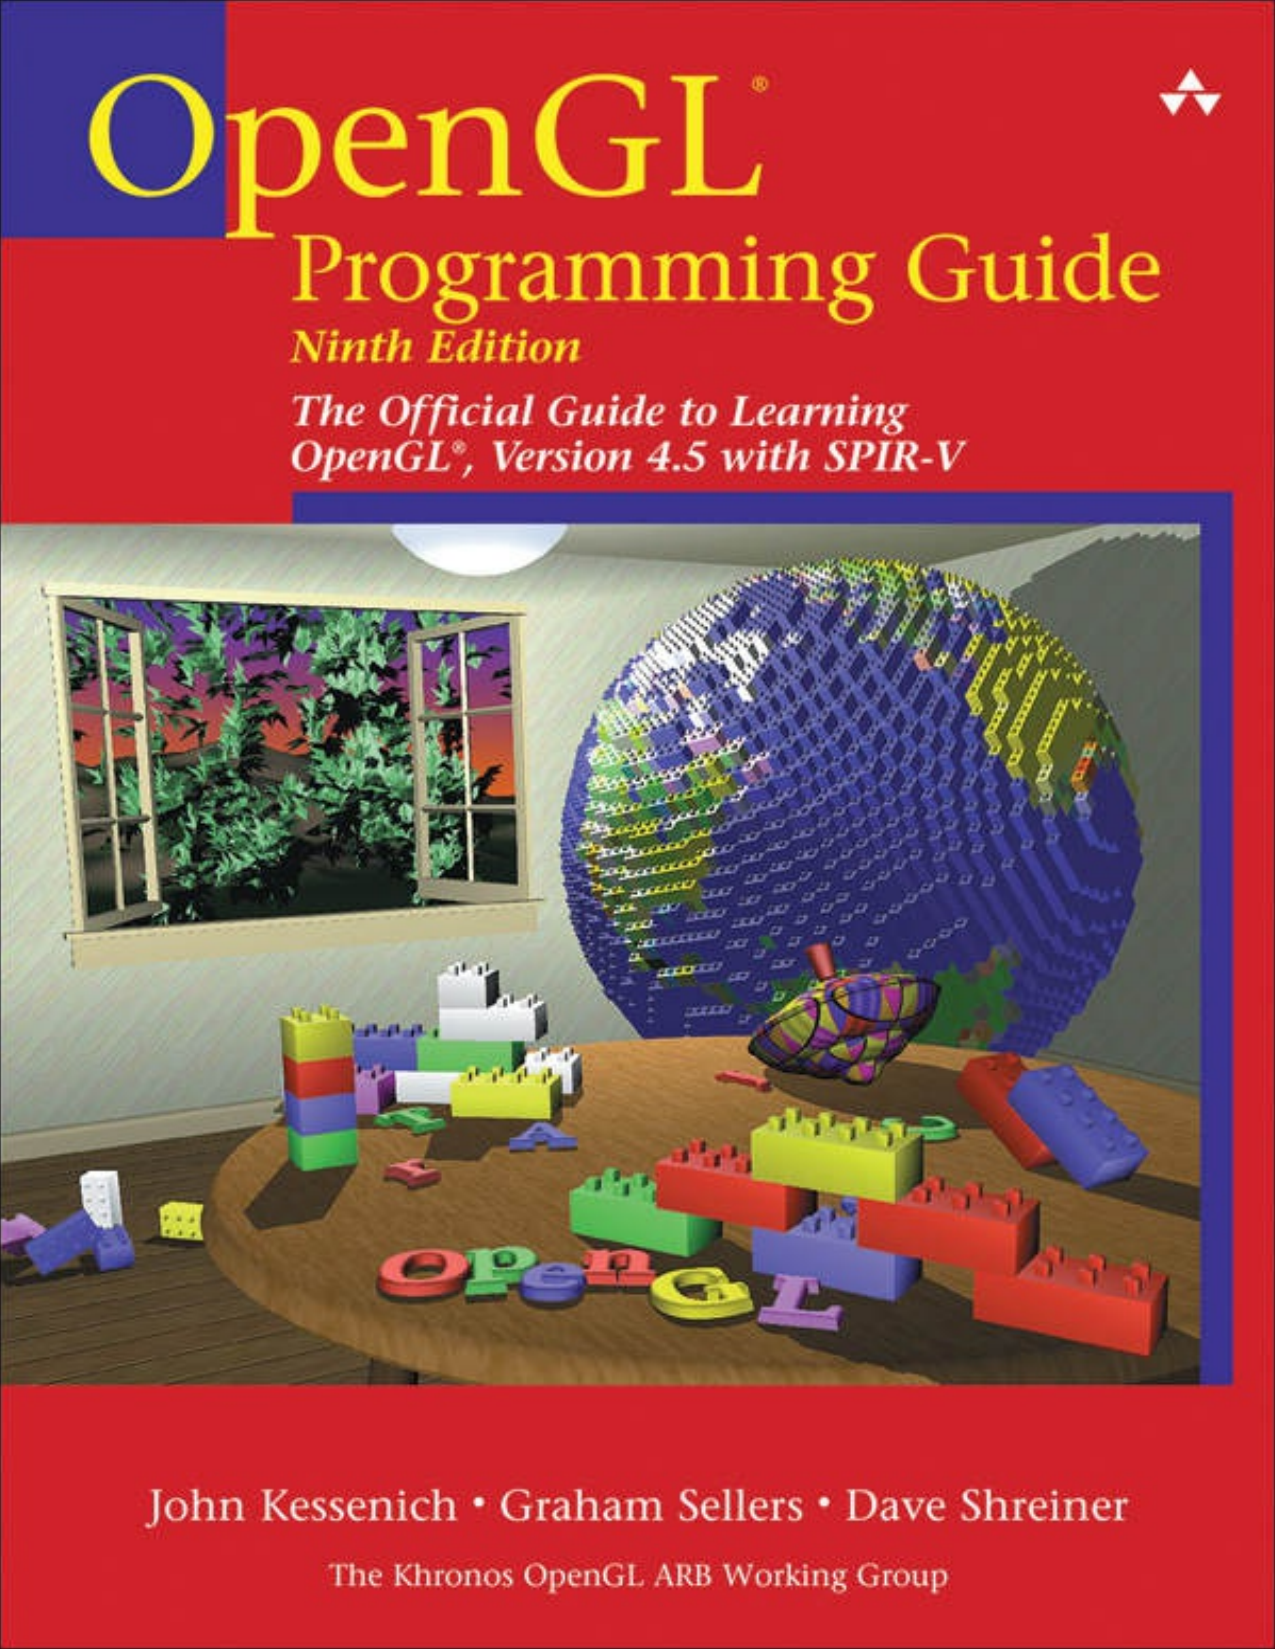 OpenGL Programming Guide: The Official Guide To Learning OpenGL